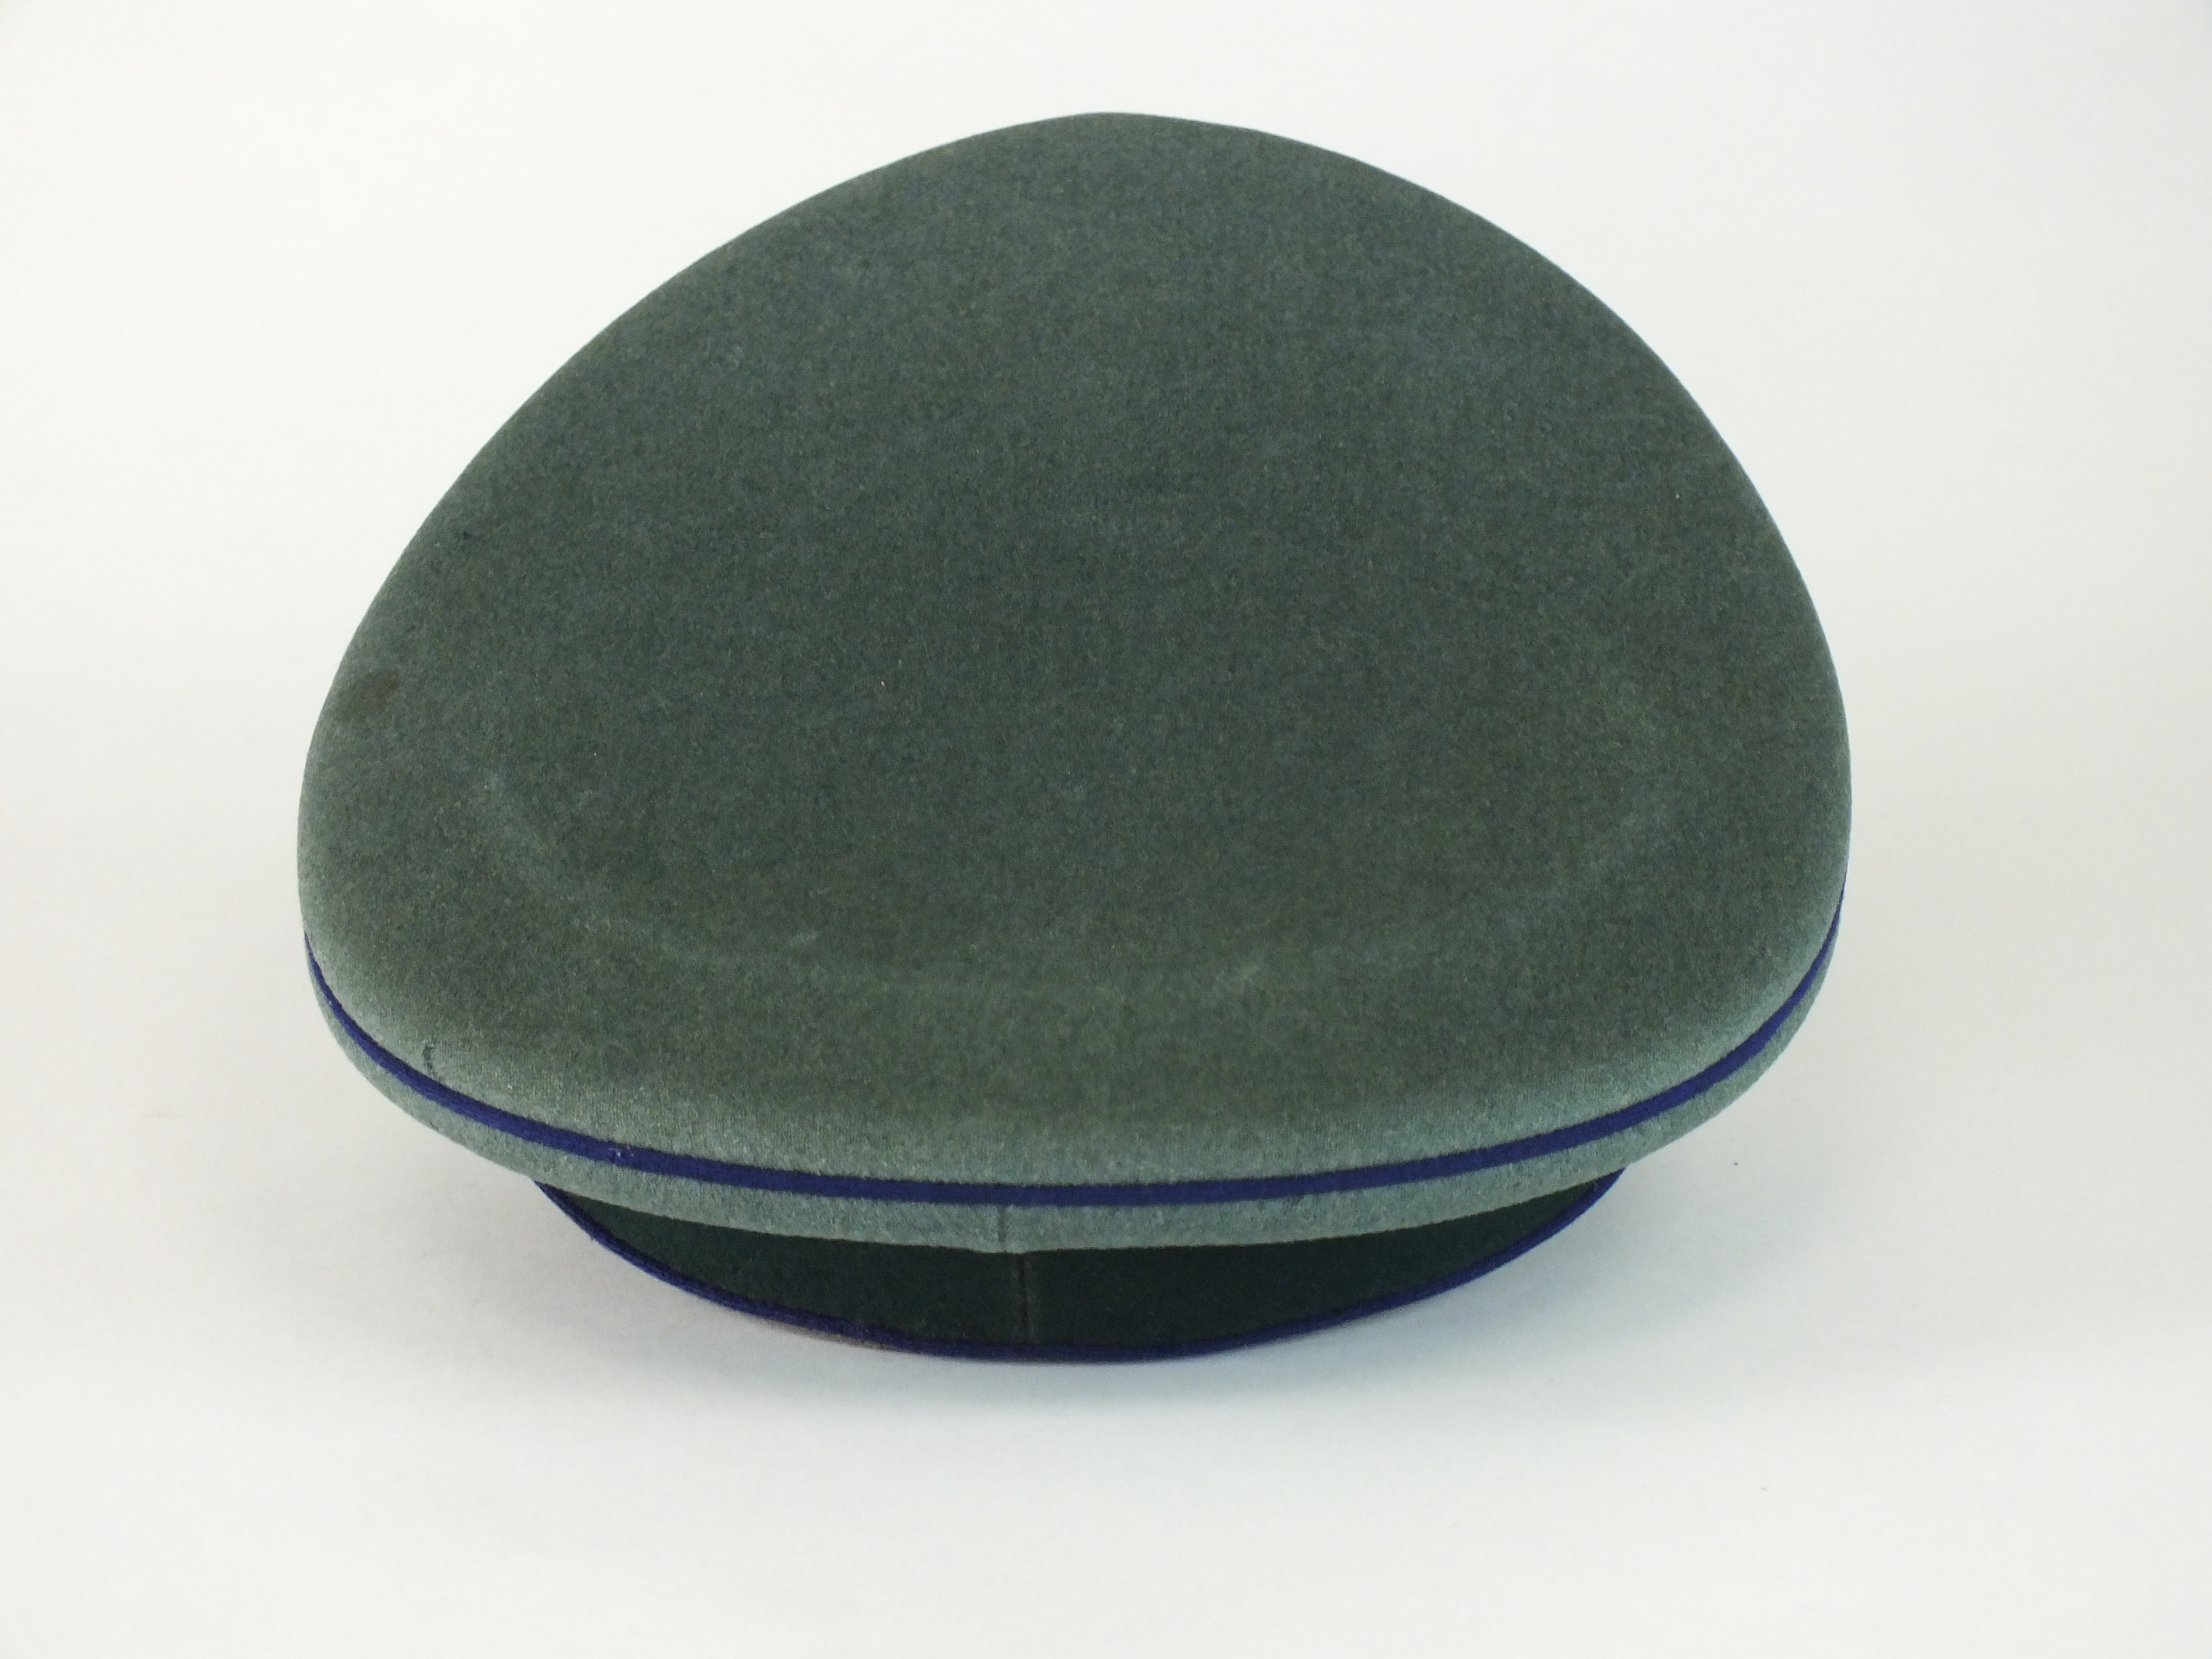 German Third Reich Army Medical Officer's visor - Image 4 of 5